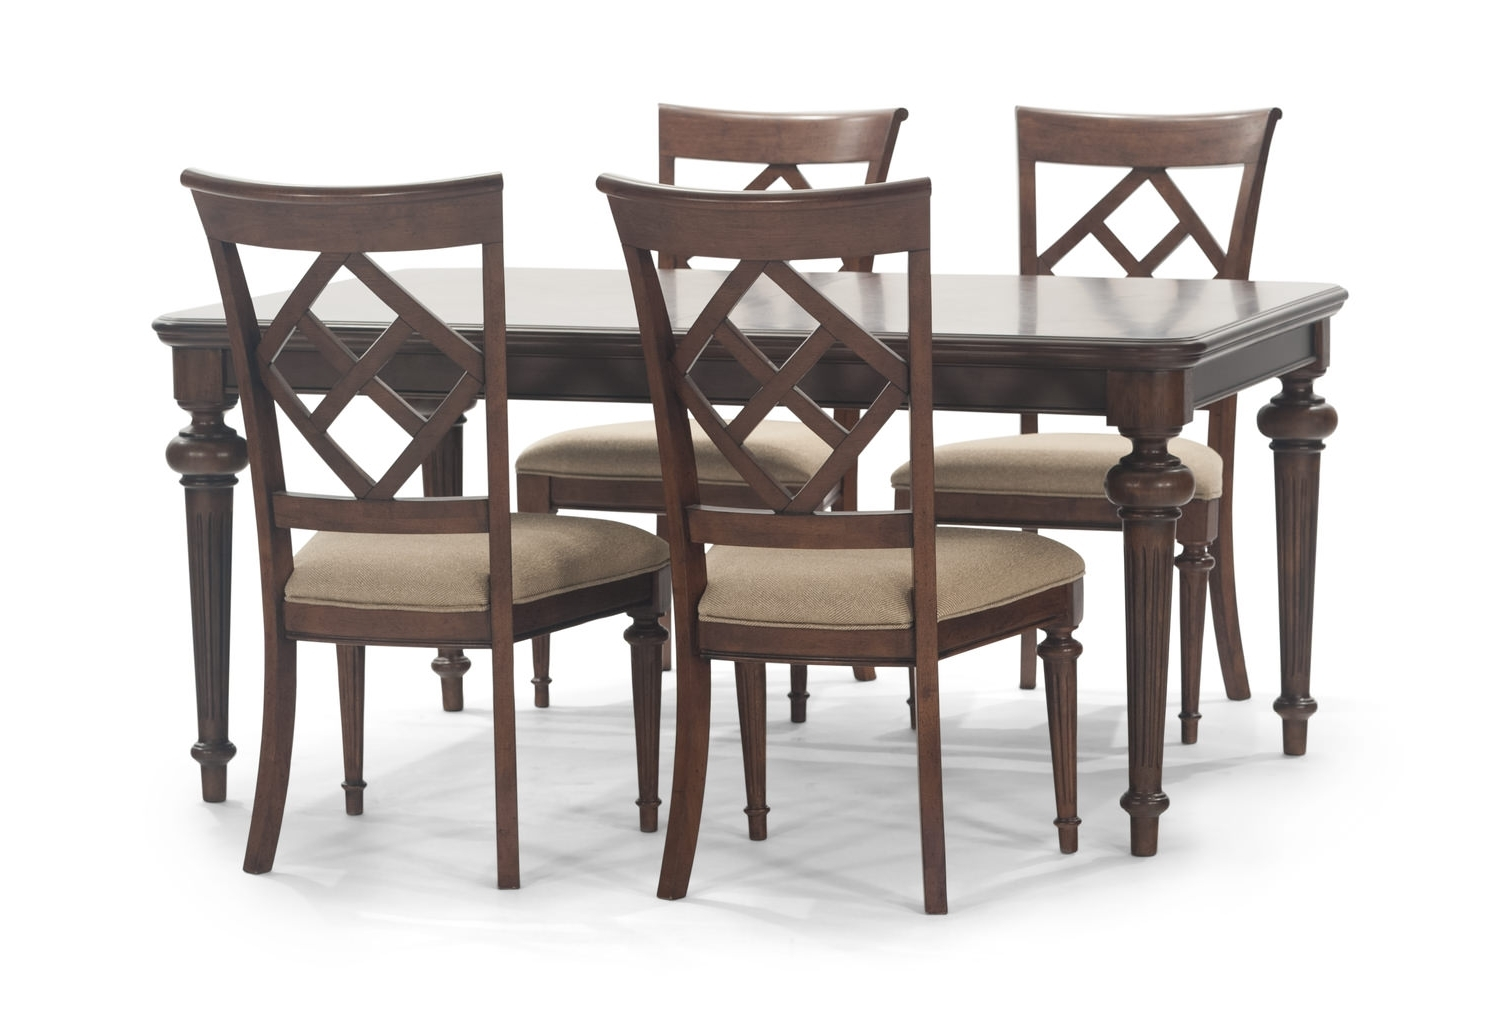 Logan Dining Tables Within Most Recently Released Logan Dining Table With 4 Side Chairs (View 7 of 25)